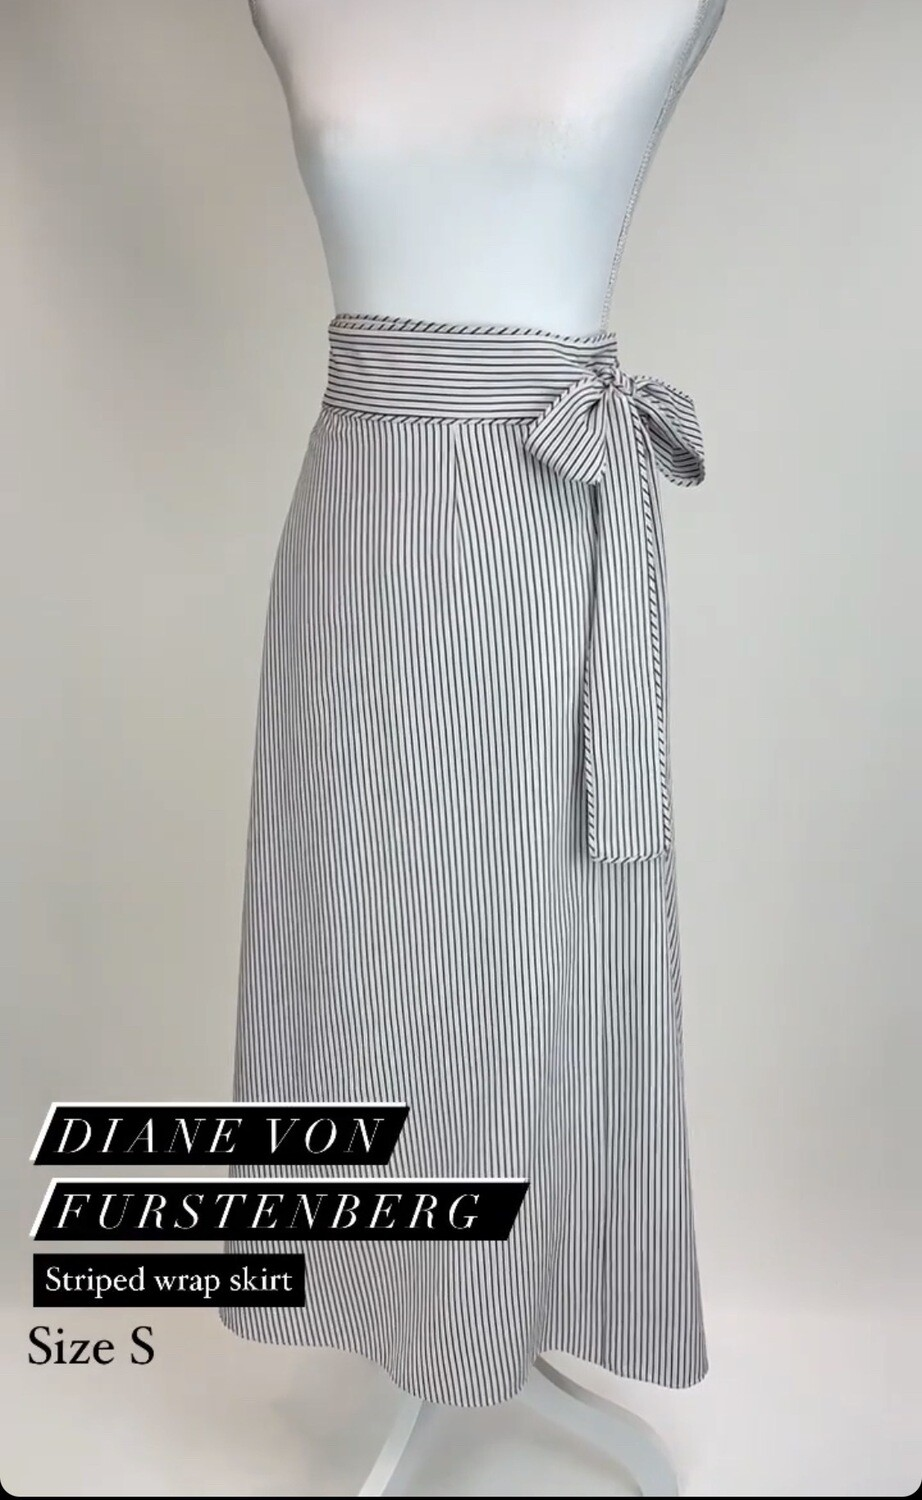 Diane Von Furstenberg, Striped Wrap Skirt, Size S